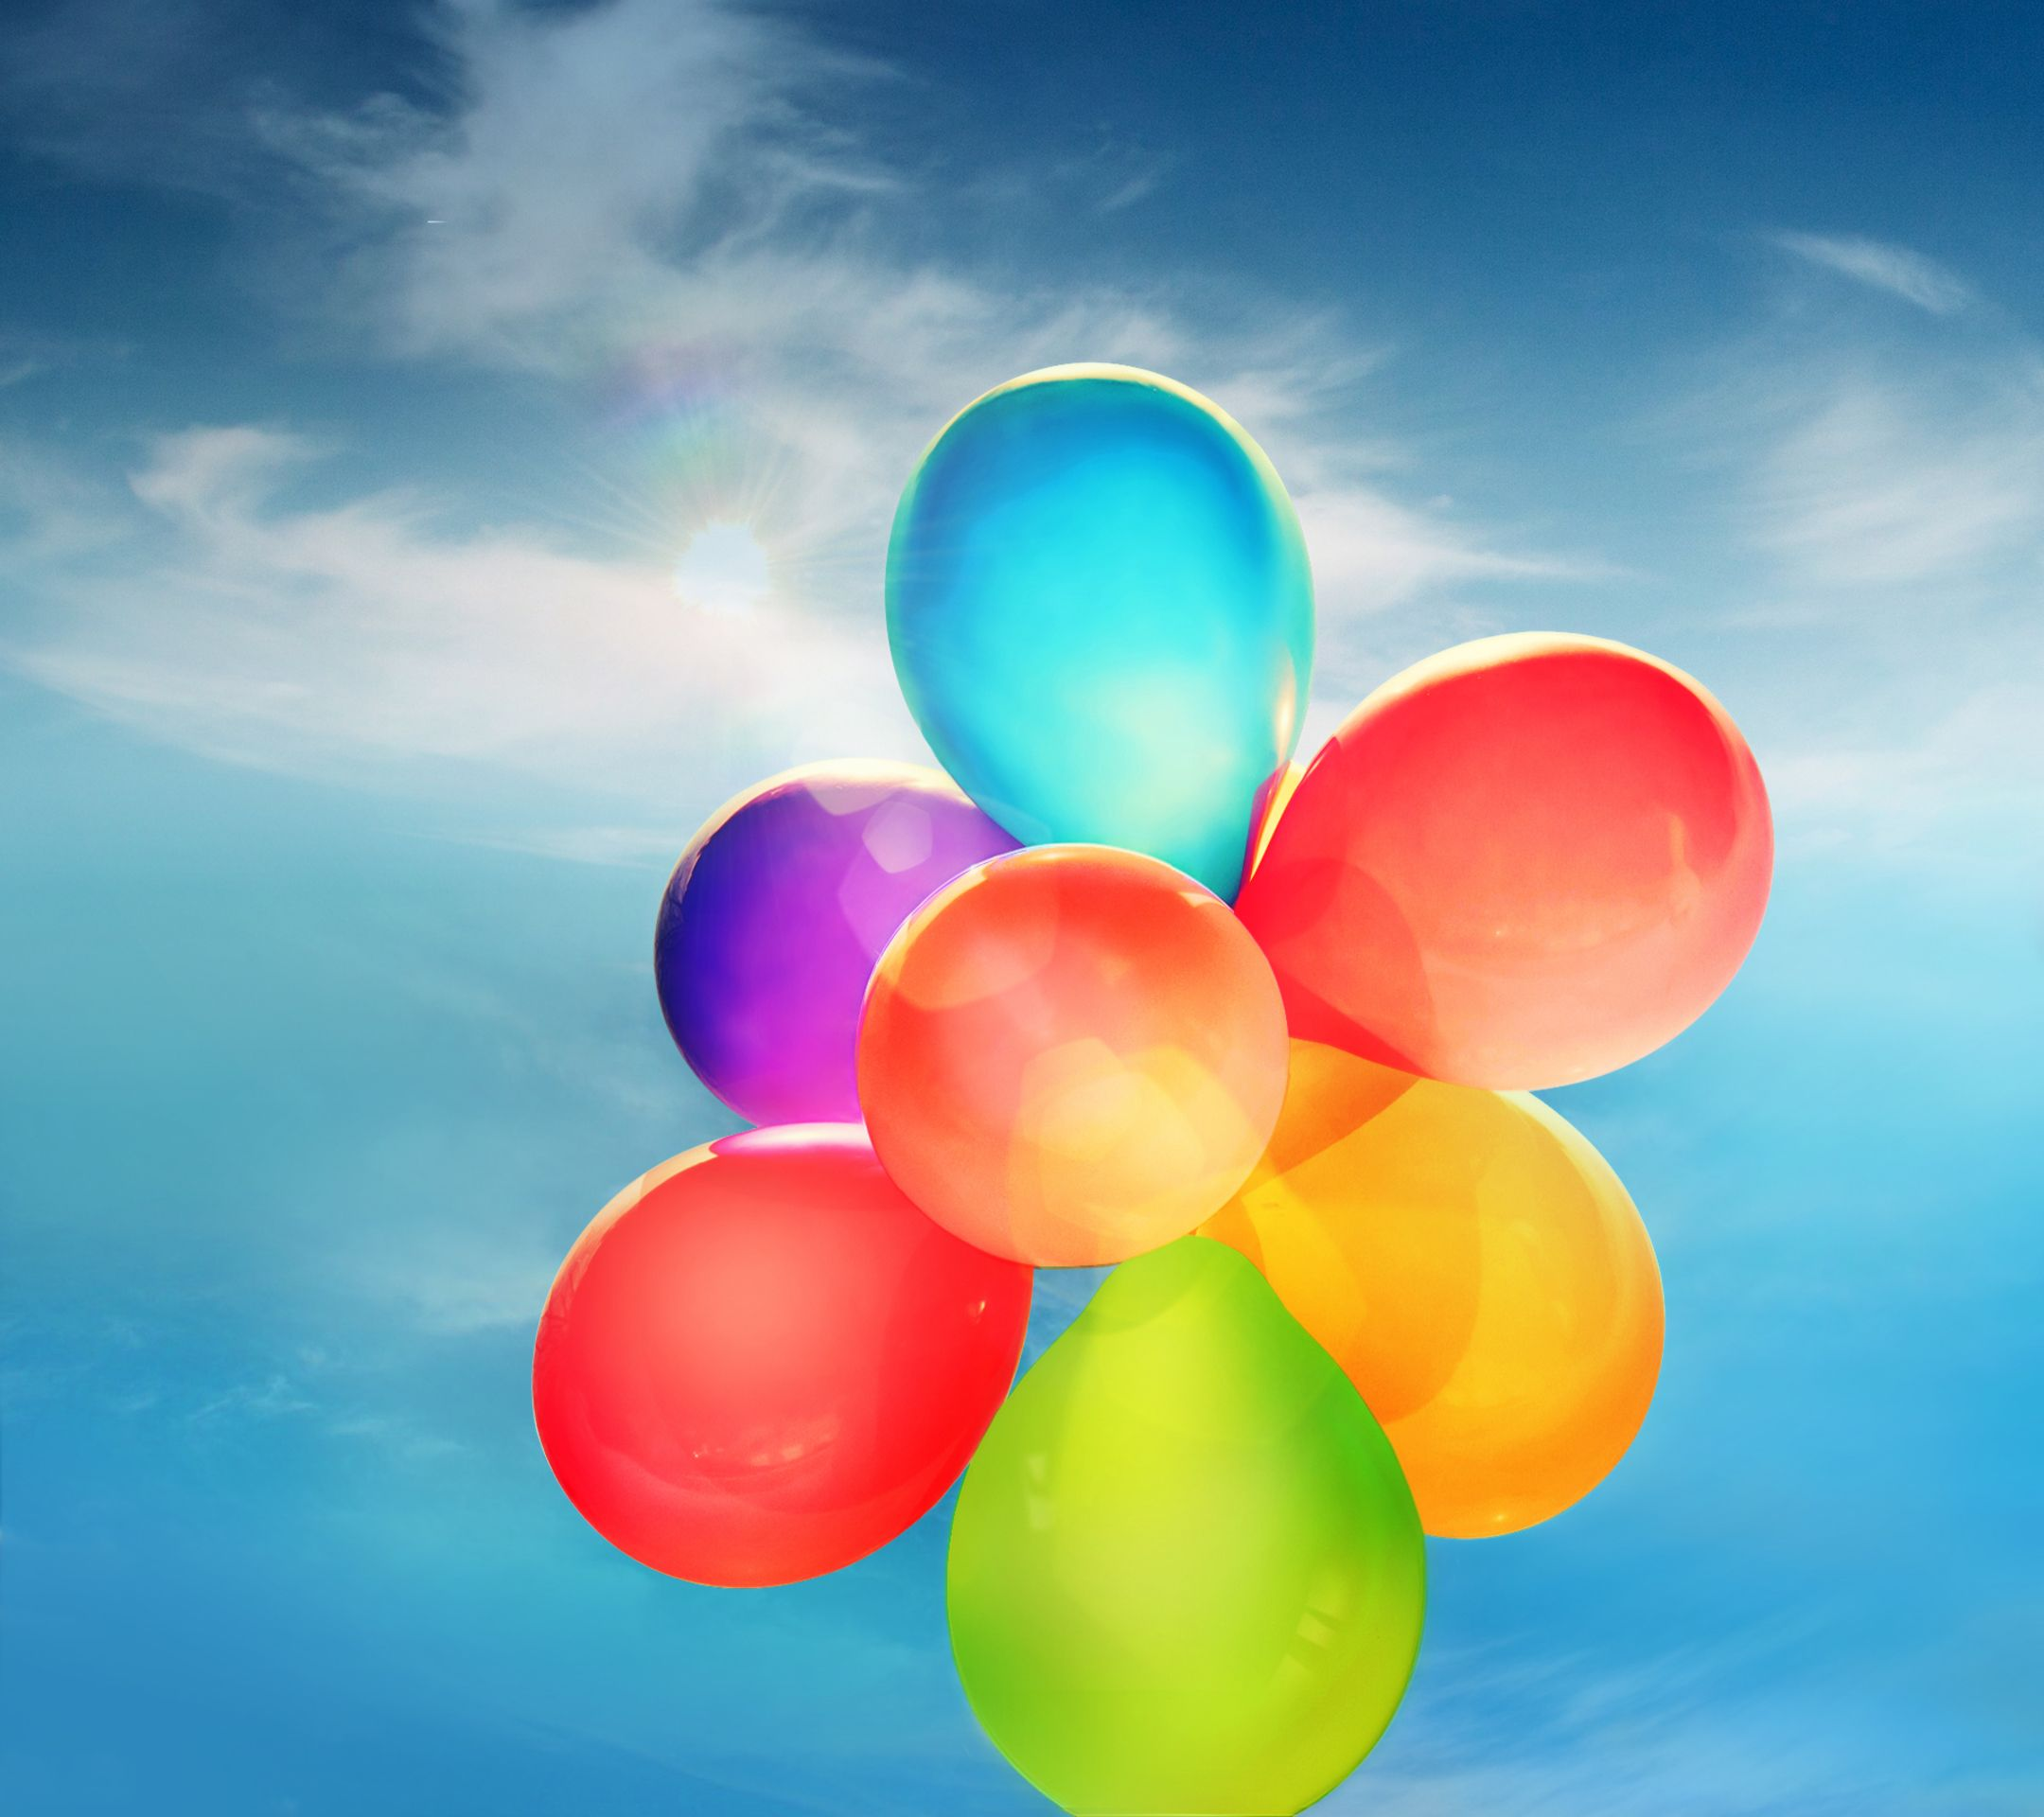 balloons wallpaper hd balloons wallpaper tumblr | balloons | pinterest